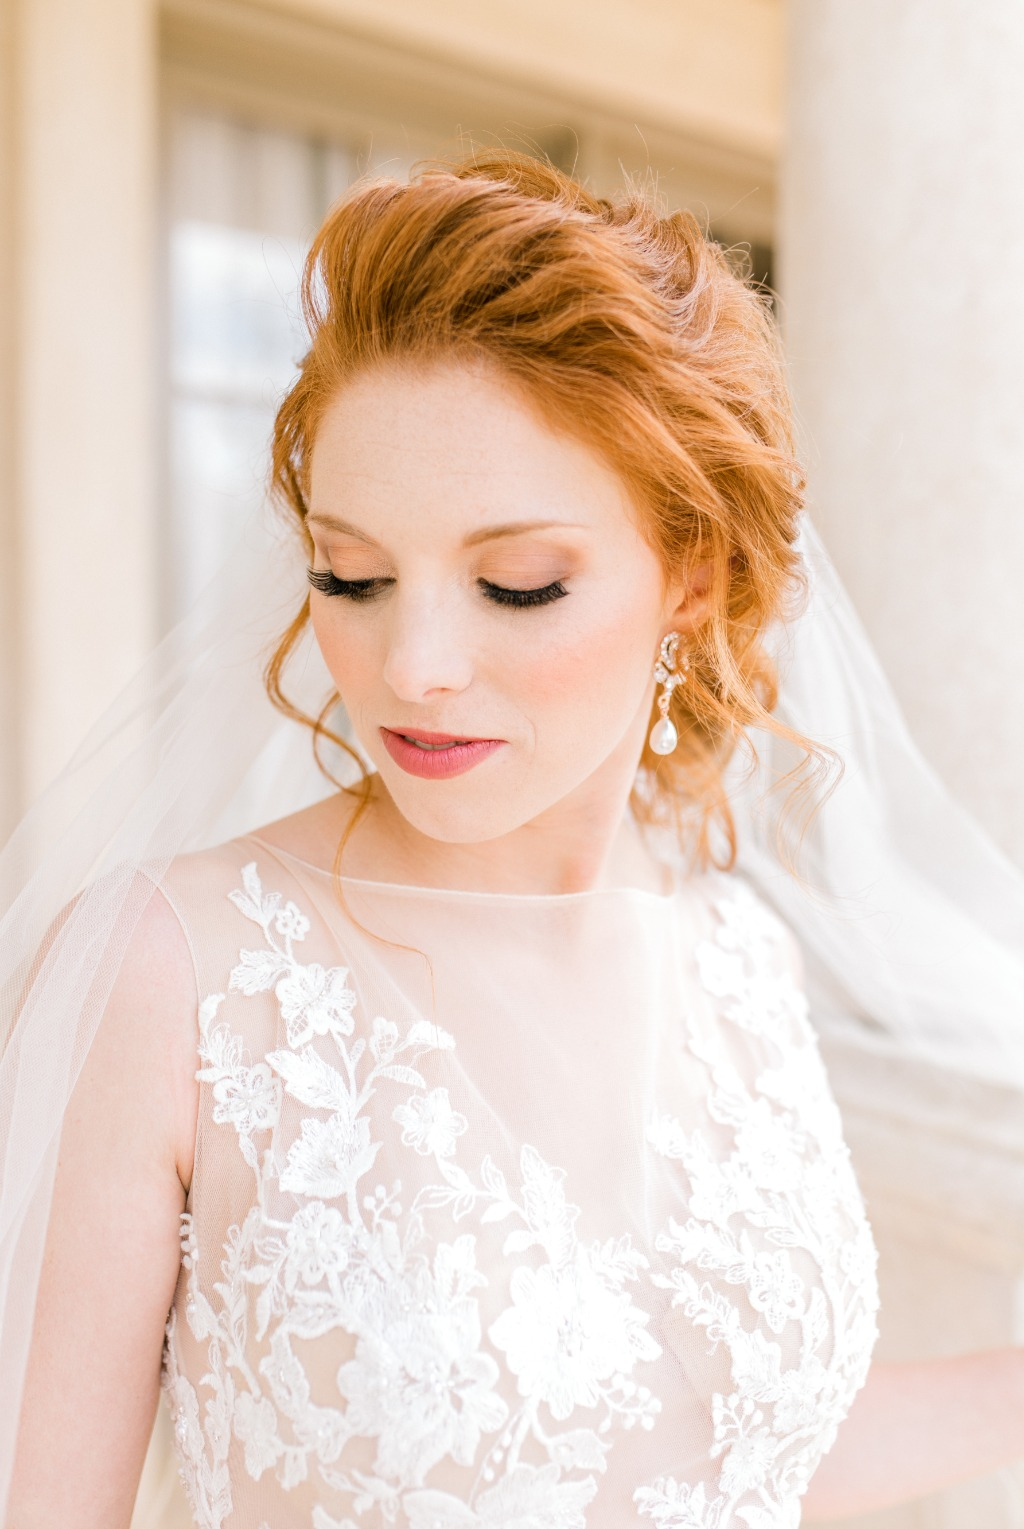 Bridal portraits on a wedding day is one of my favorite moments to capture!